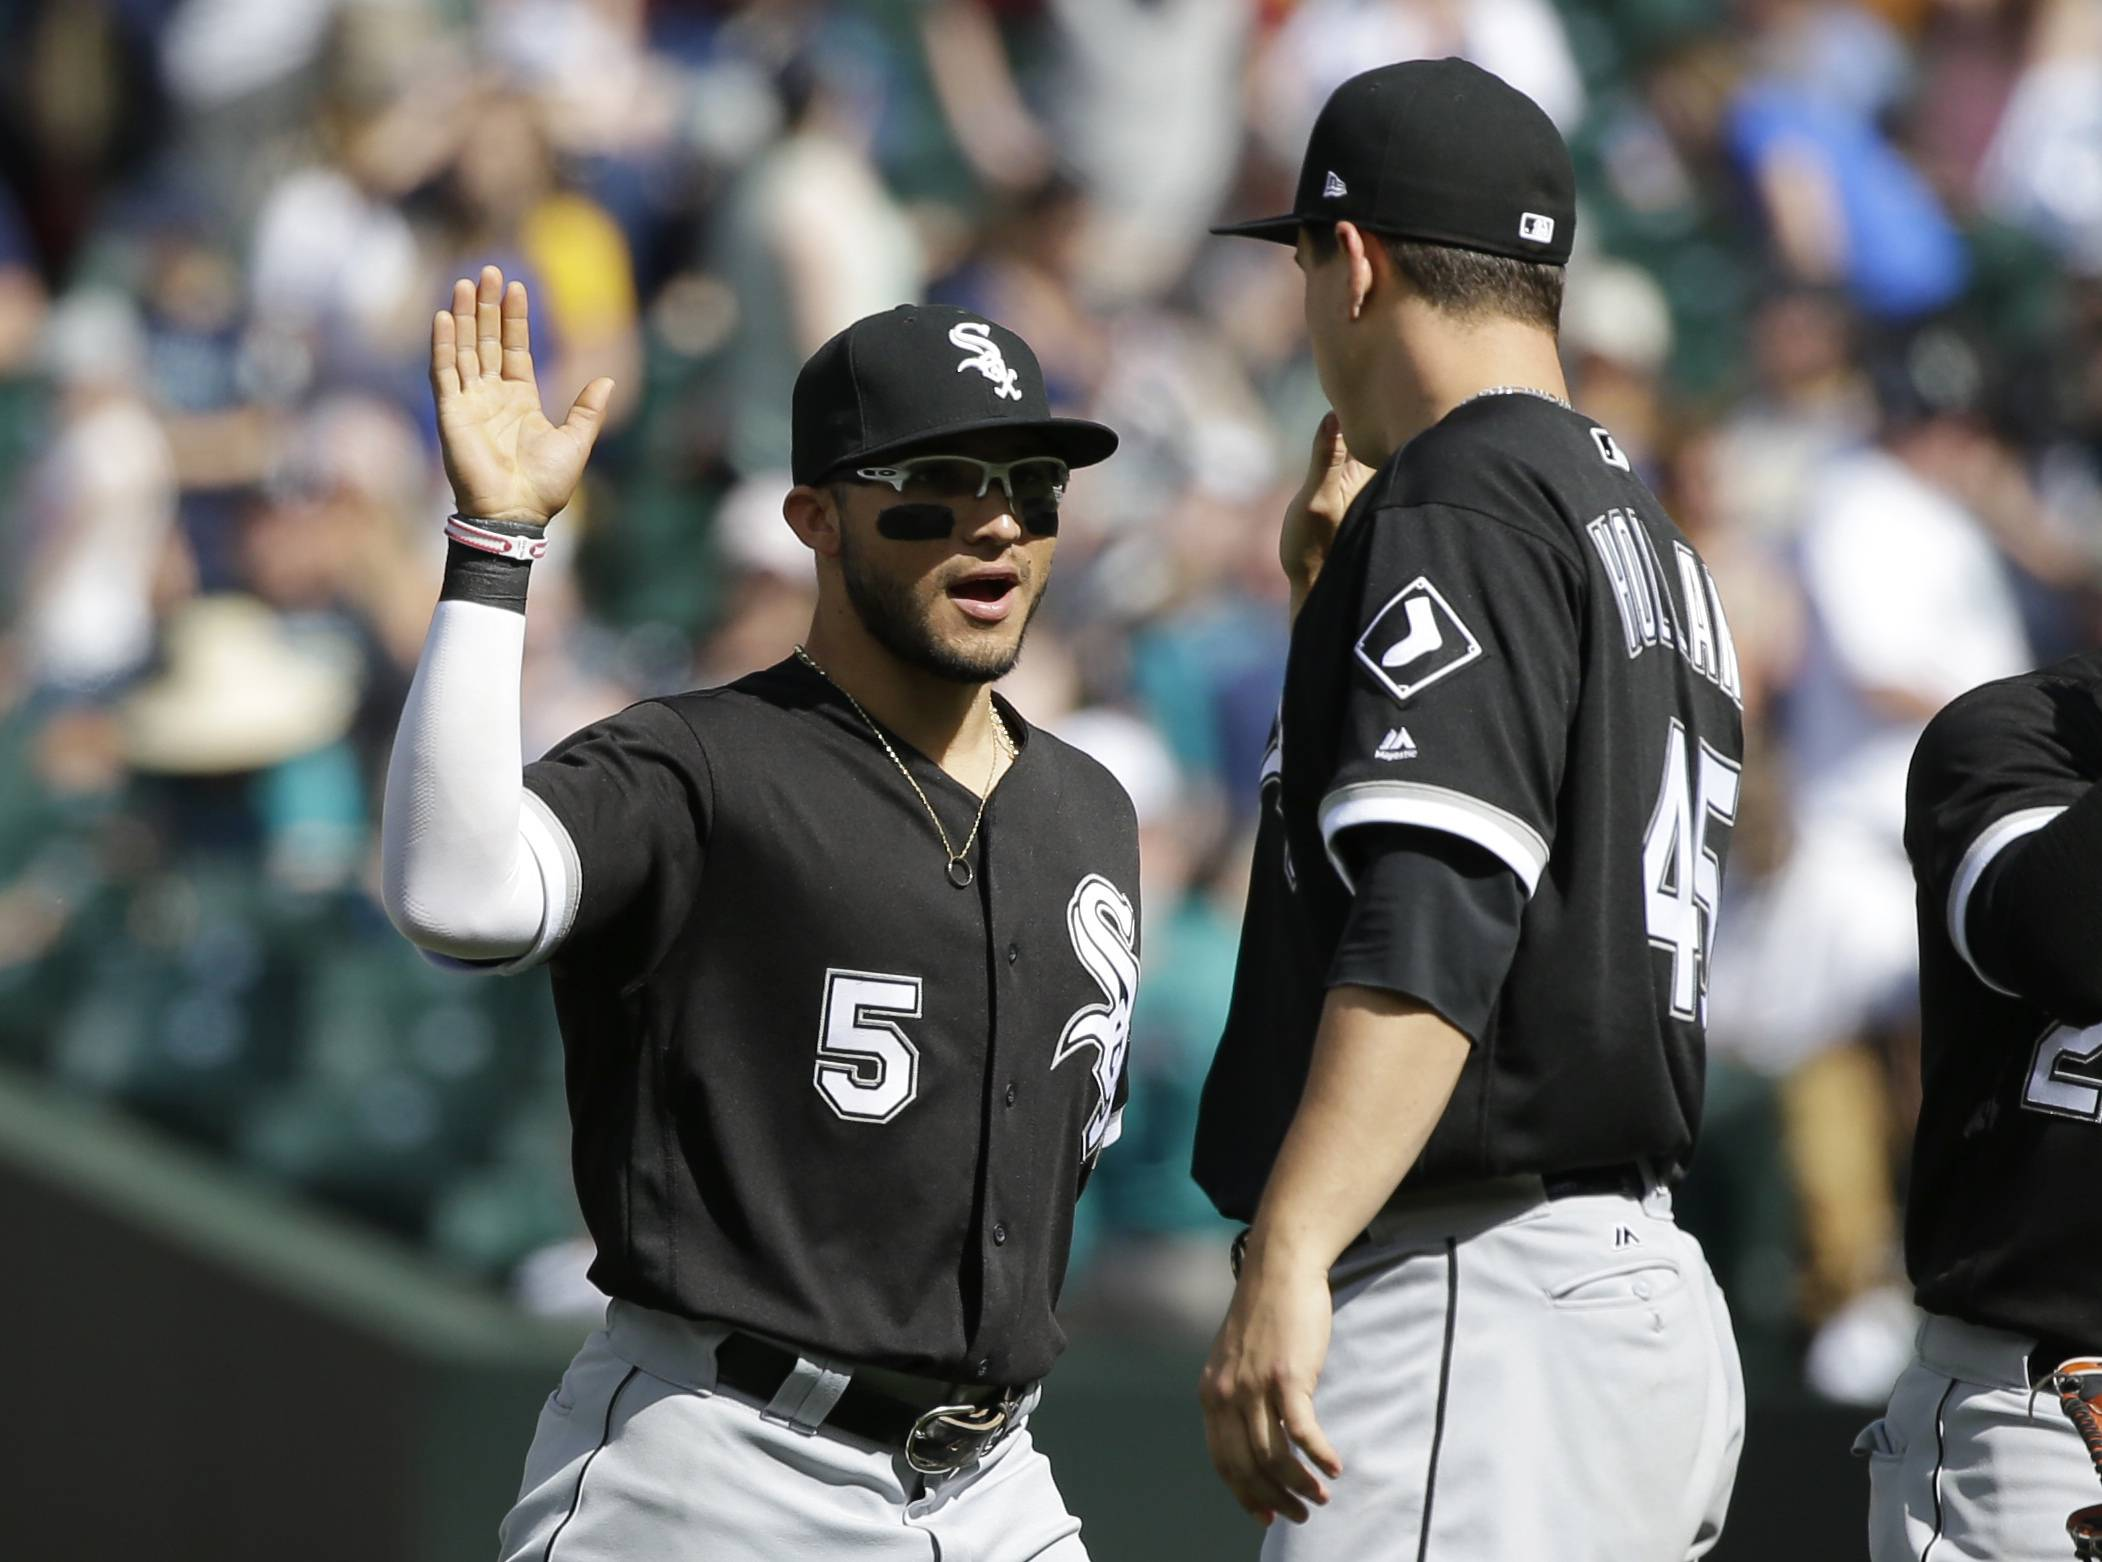 Chicago White Sox's Yolmer Sanchez (5) greets starting pitcher Derek Holland after the White Sox beat the Seattle Mariners 8-1 in a baseball game, Sunday, May 21, 2017, in Seattle.